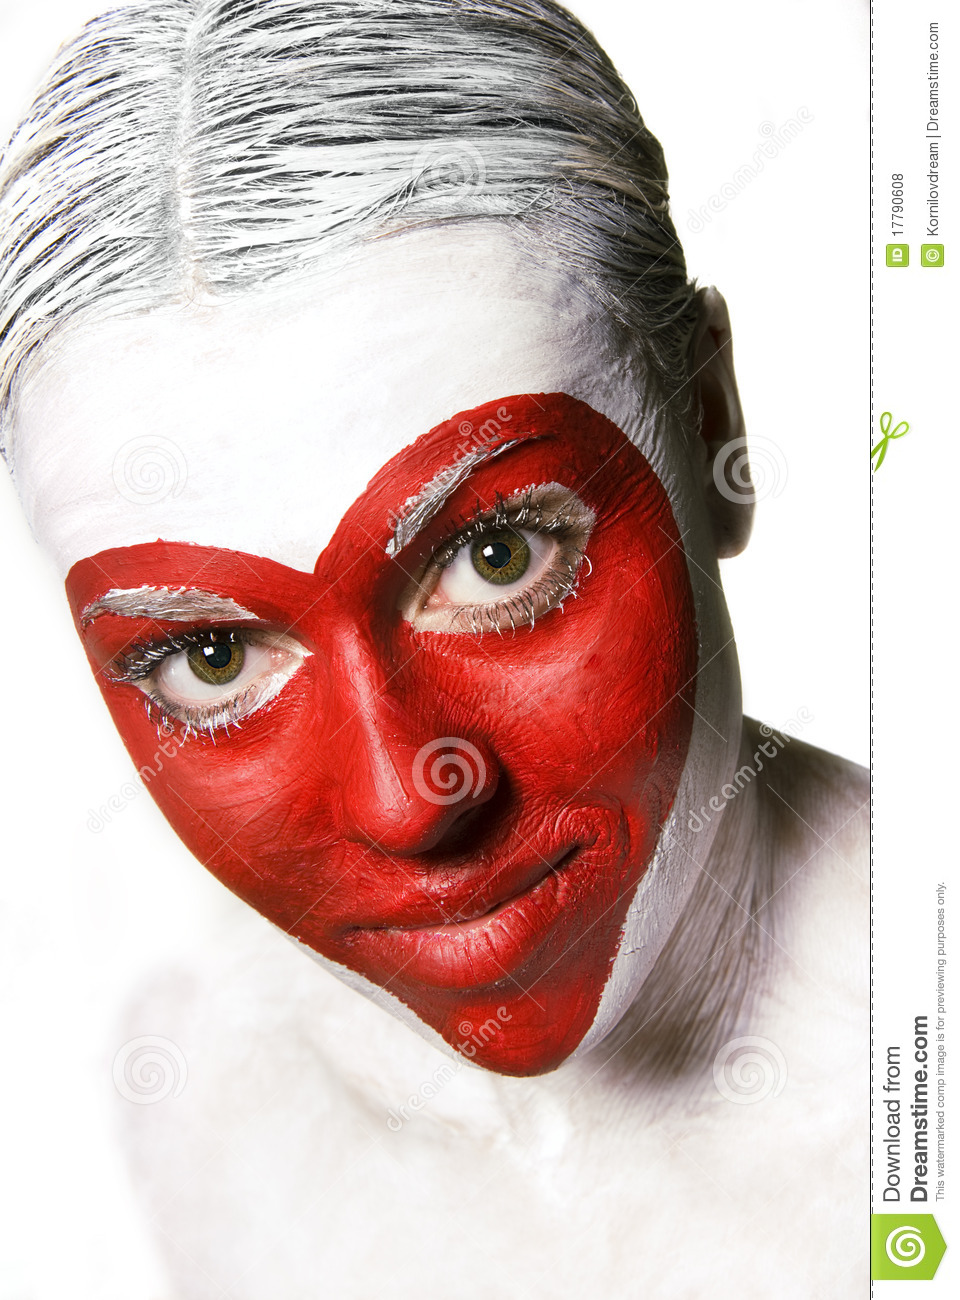 Face Painted Red Heart Shape Royalty Free Stock Photos